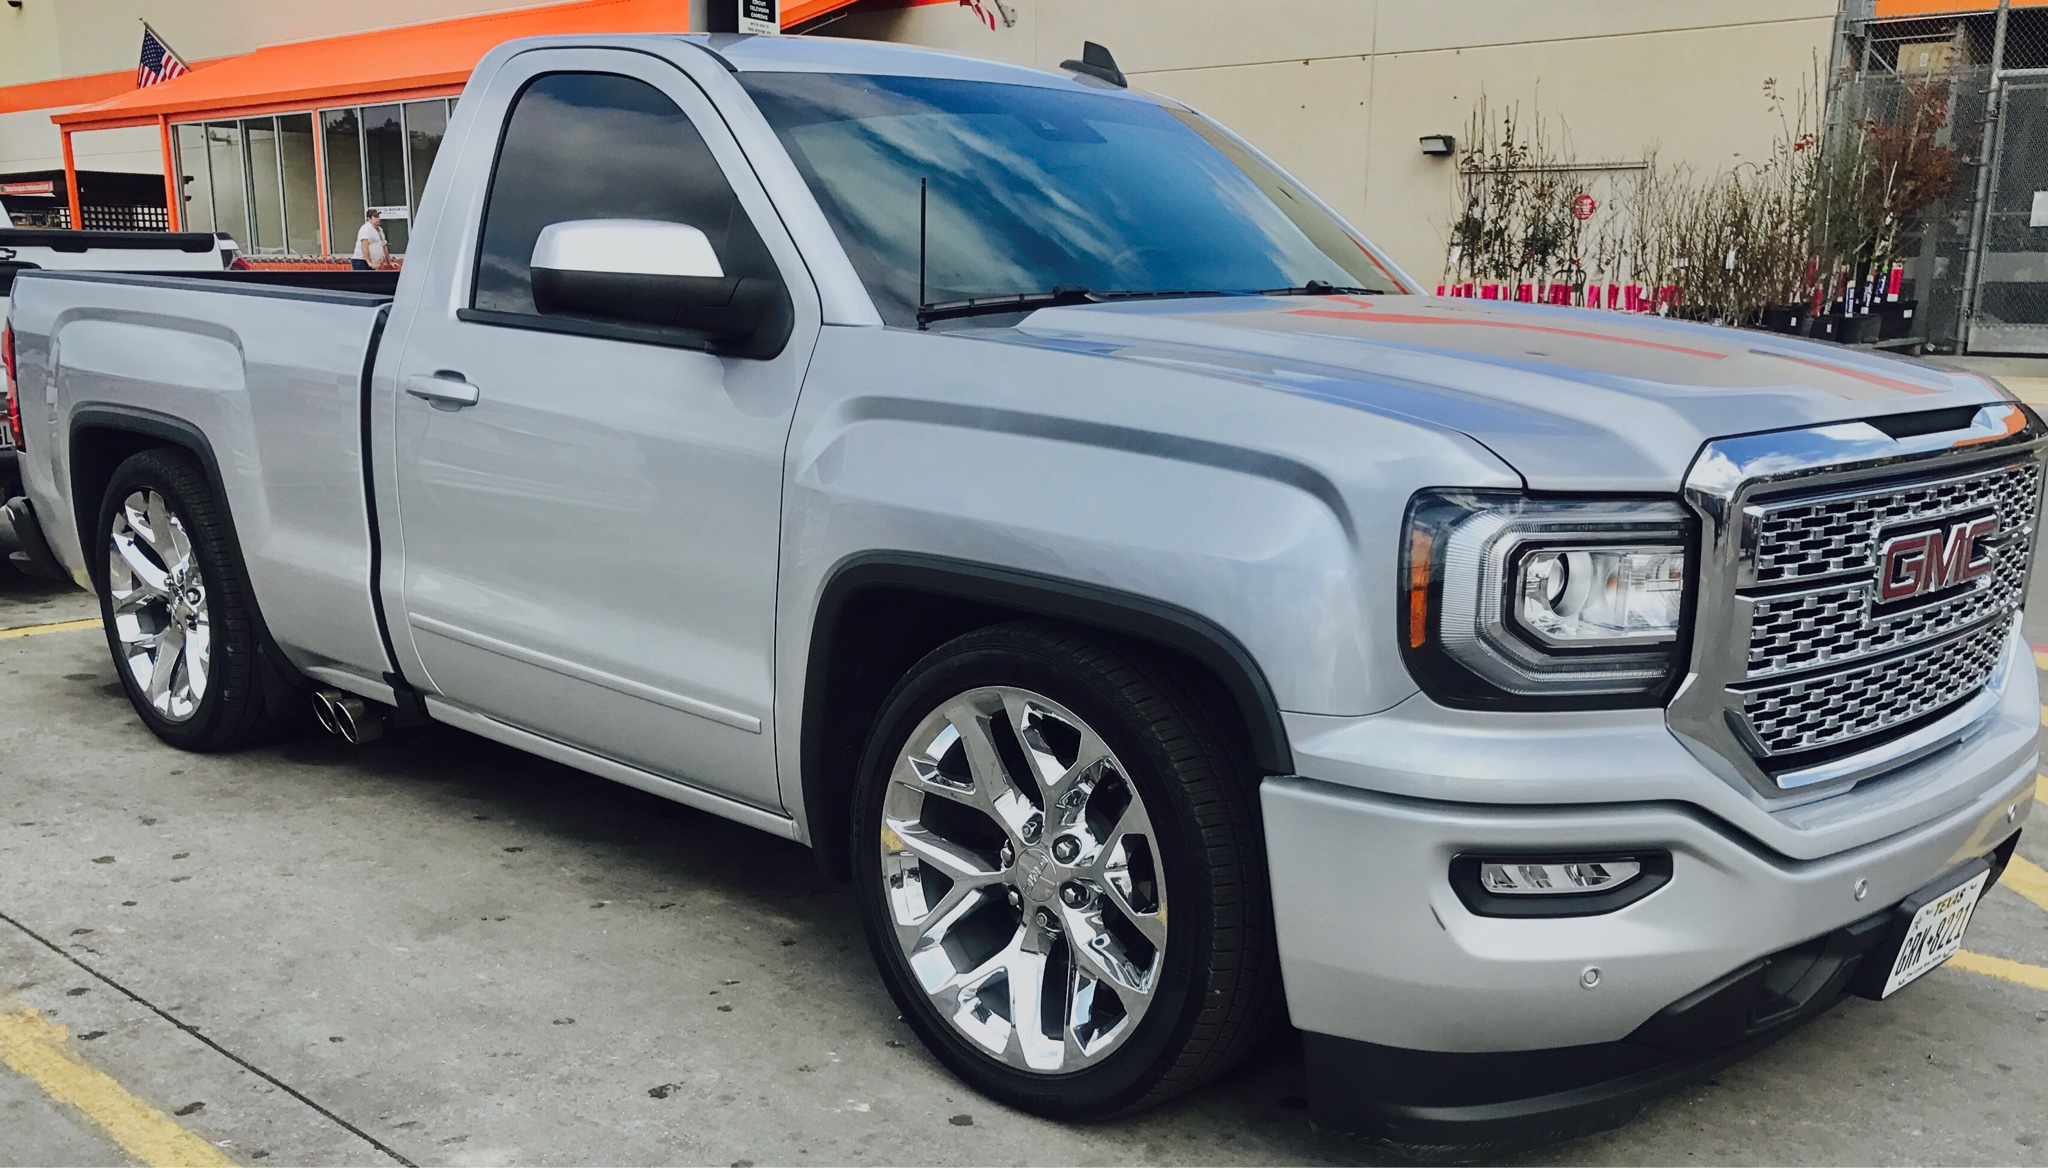 2016 Gmc Sierra 1500 Regular Cab >> Lowered guys what's your tire size!? - 2014-2018 Silverado & Sierra Mods - GM-Trucks.com